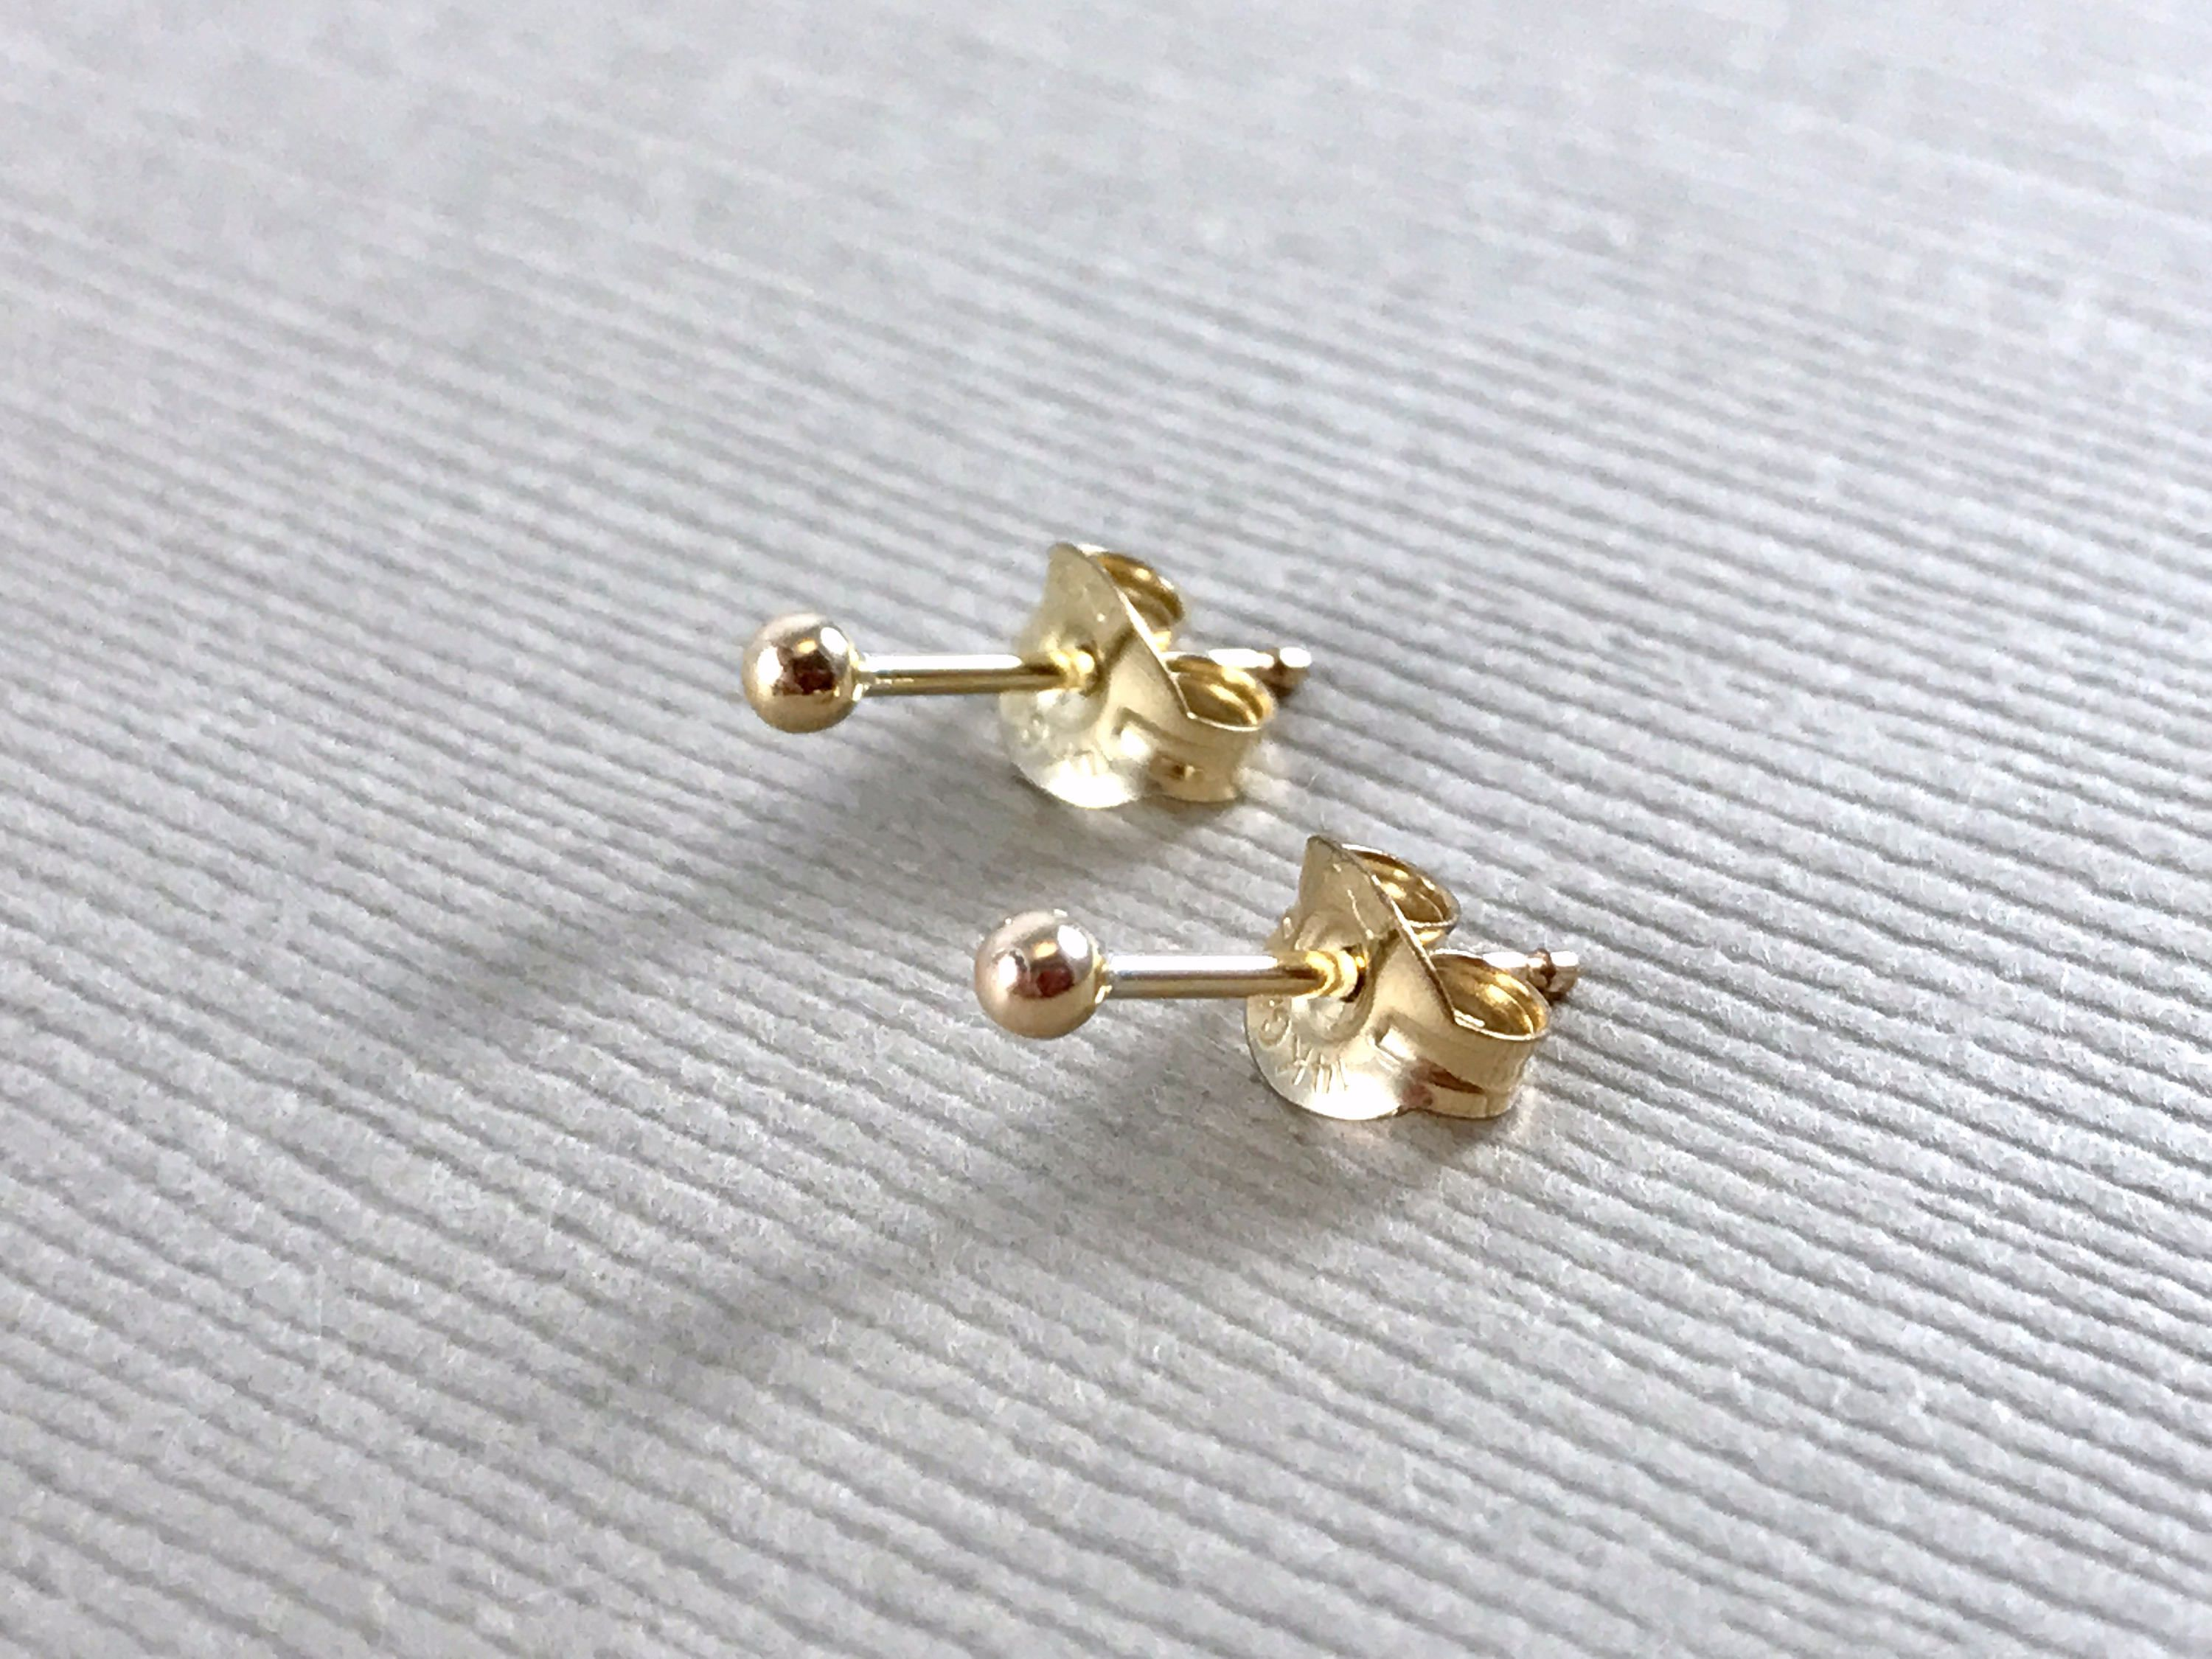 vintage climber jewelry from in earrings stelring thin tiny long line silver delicate ear item stud earring gold minimalist